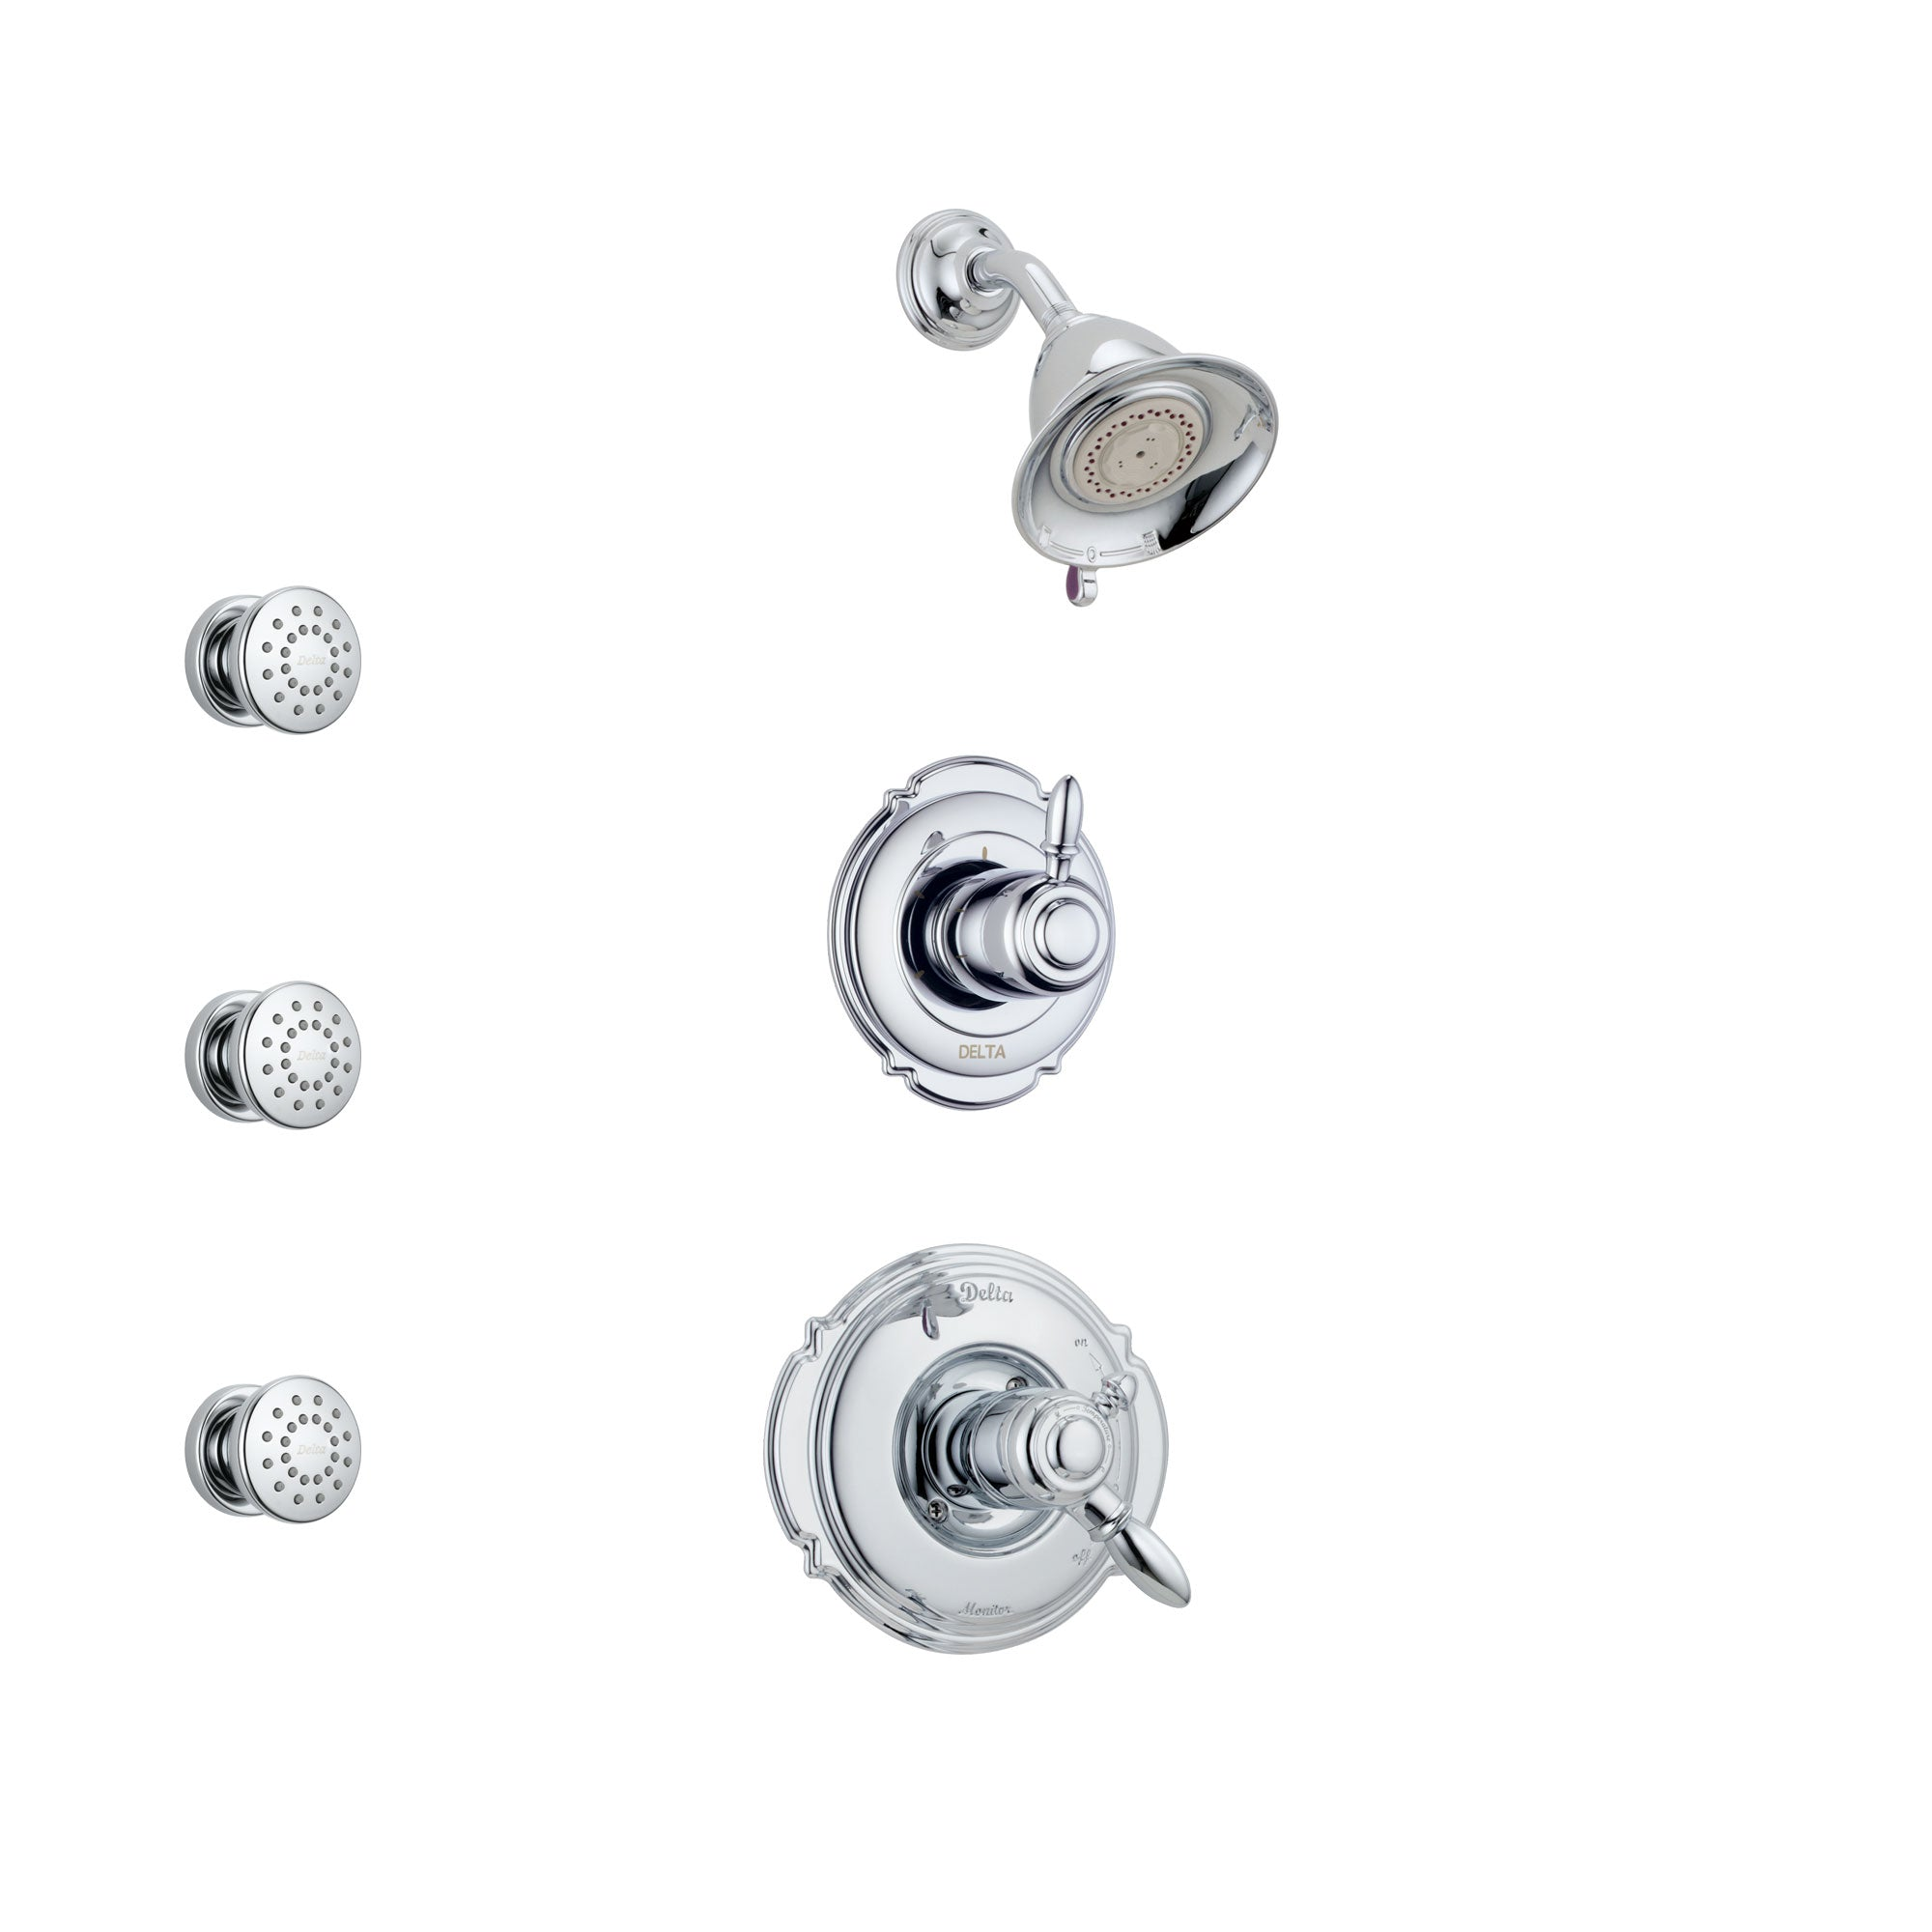 Delta Victorian Chrome Finish Shower System with Dual Control Handle, 3-Setting Diverter, Showerhead, and 3 Body Sprays SS1725511